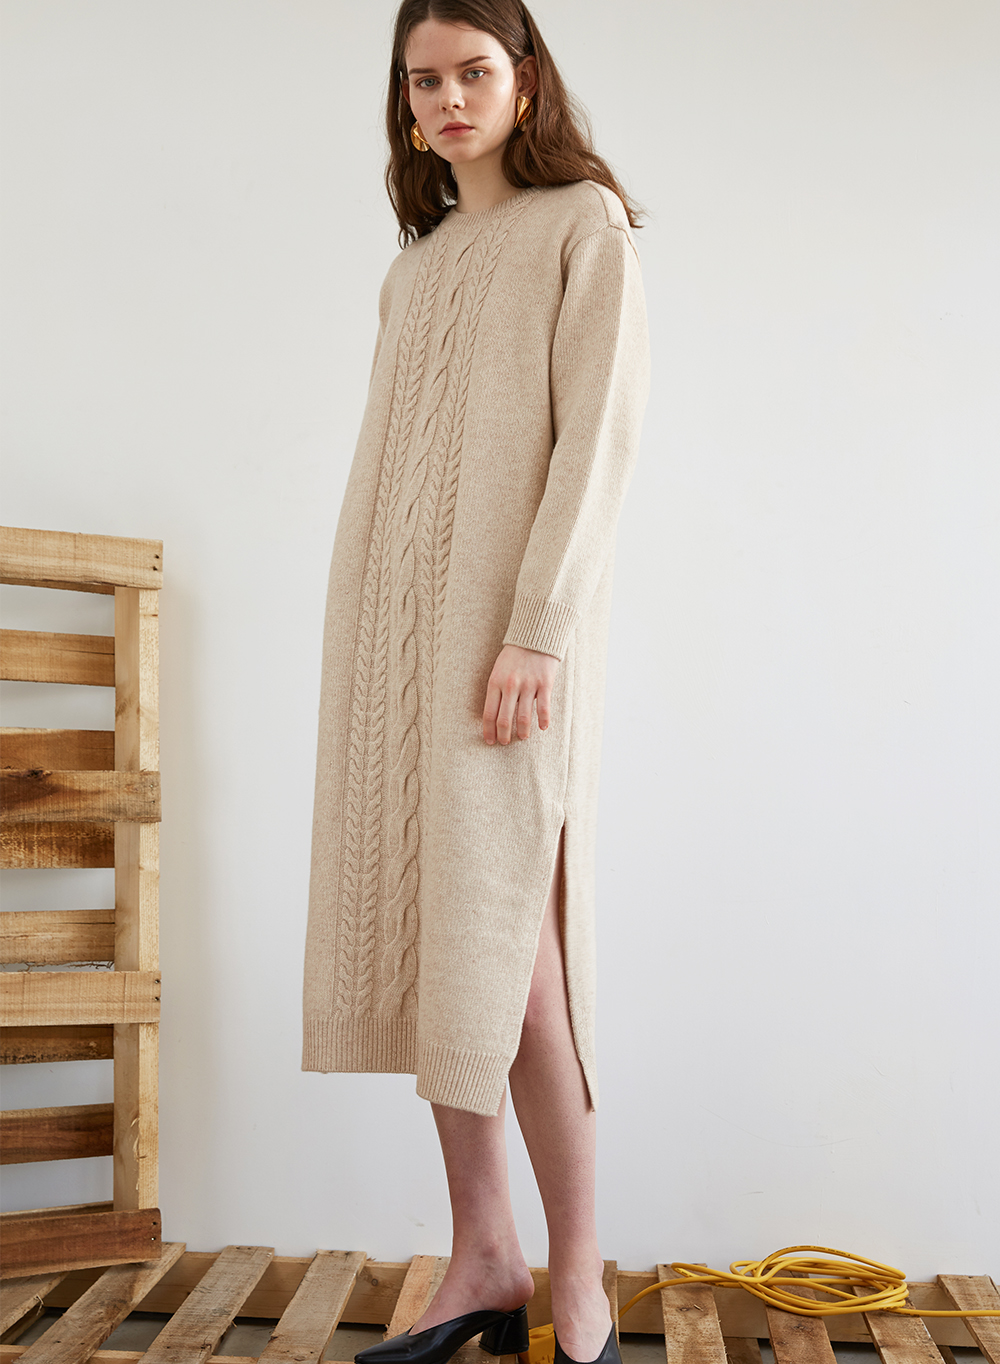 FW18 CABLE KNIT DRESS BEIGE